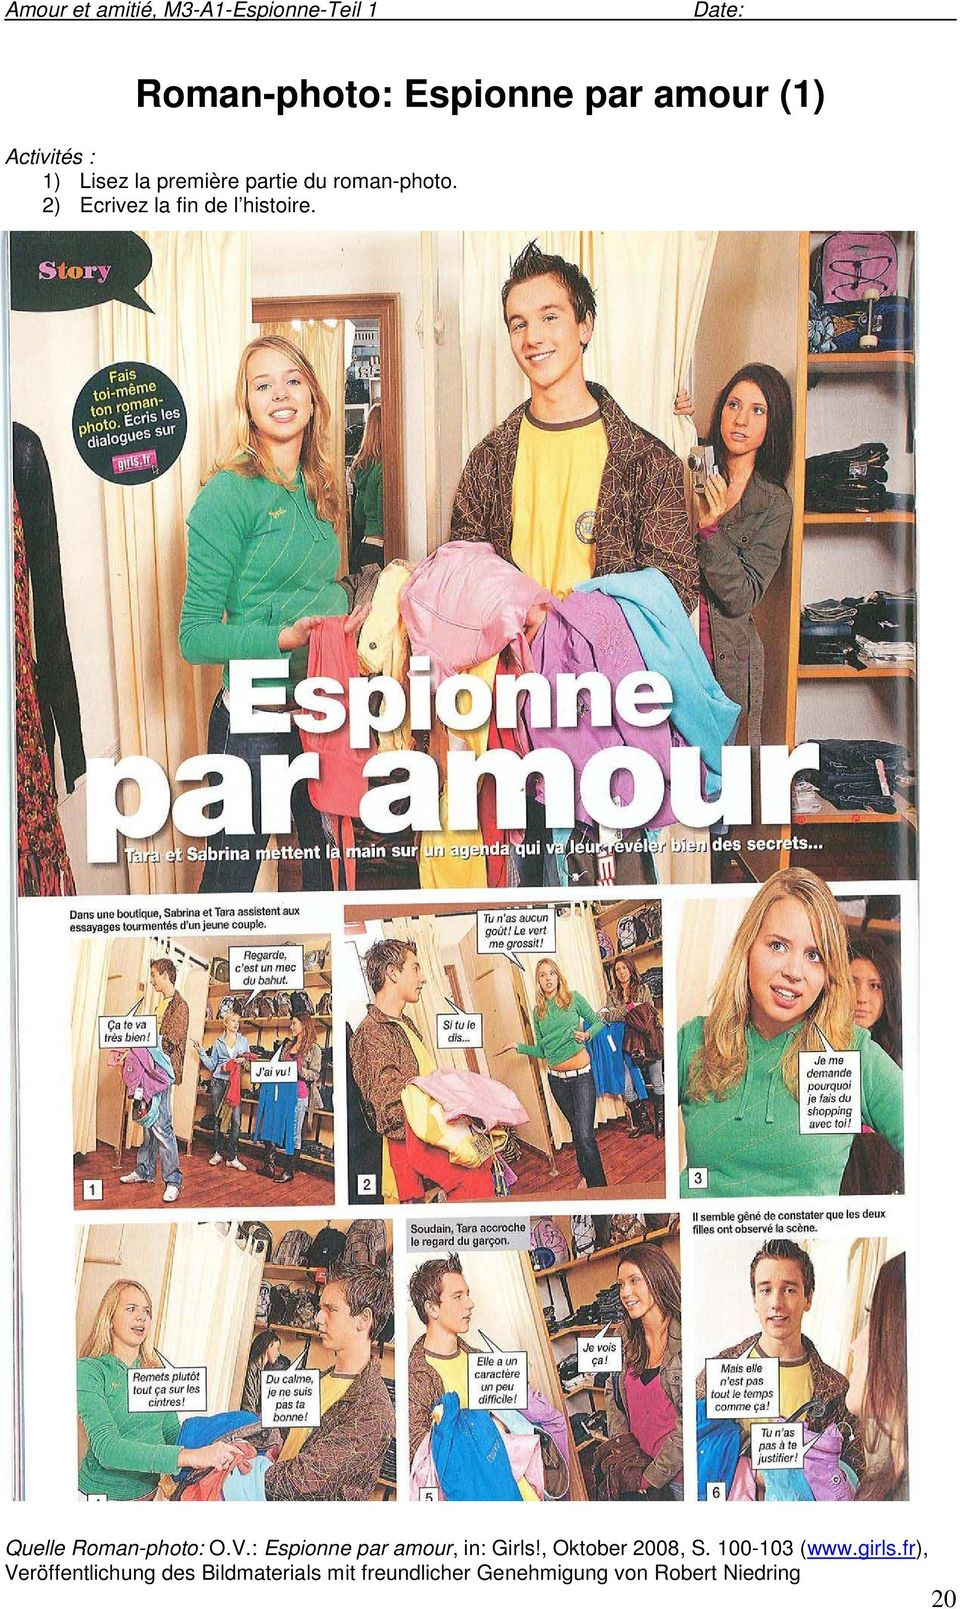 Quelle Roman-photo: O.V.: Espionne par amour, in: Girls!, Oktober 2008, S. 100-103 (www.